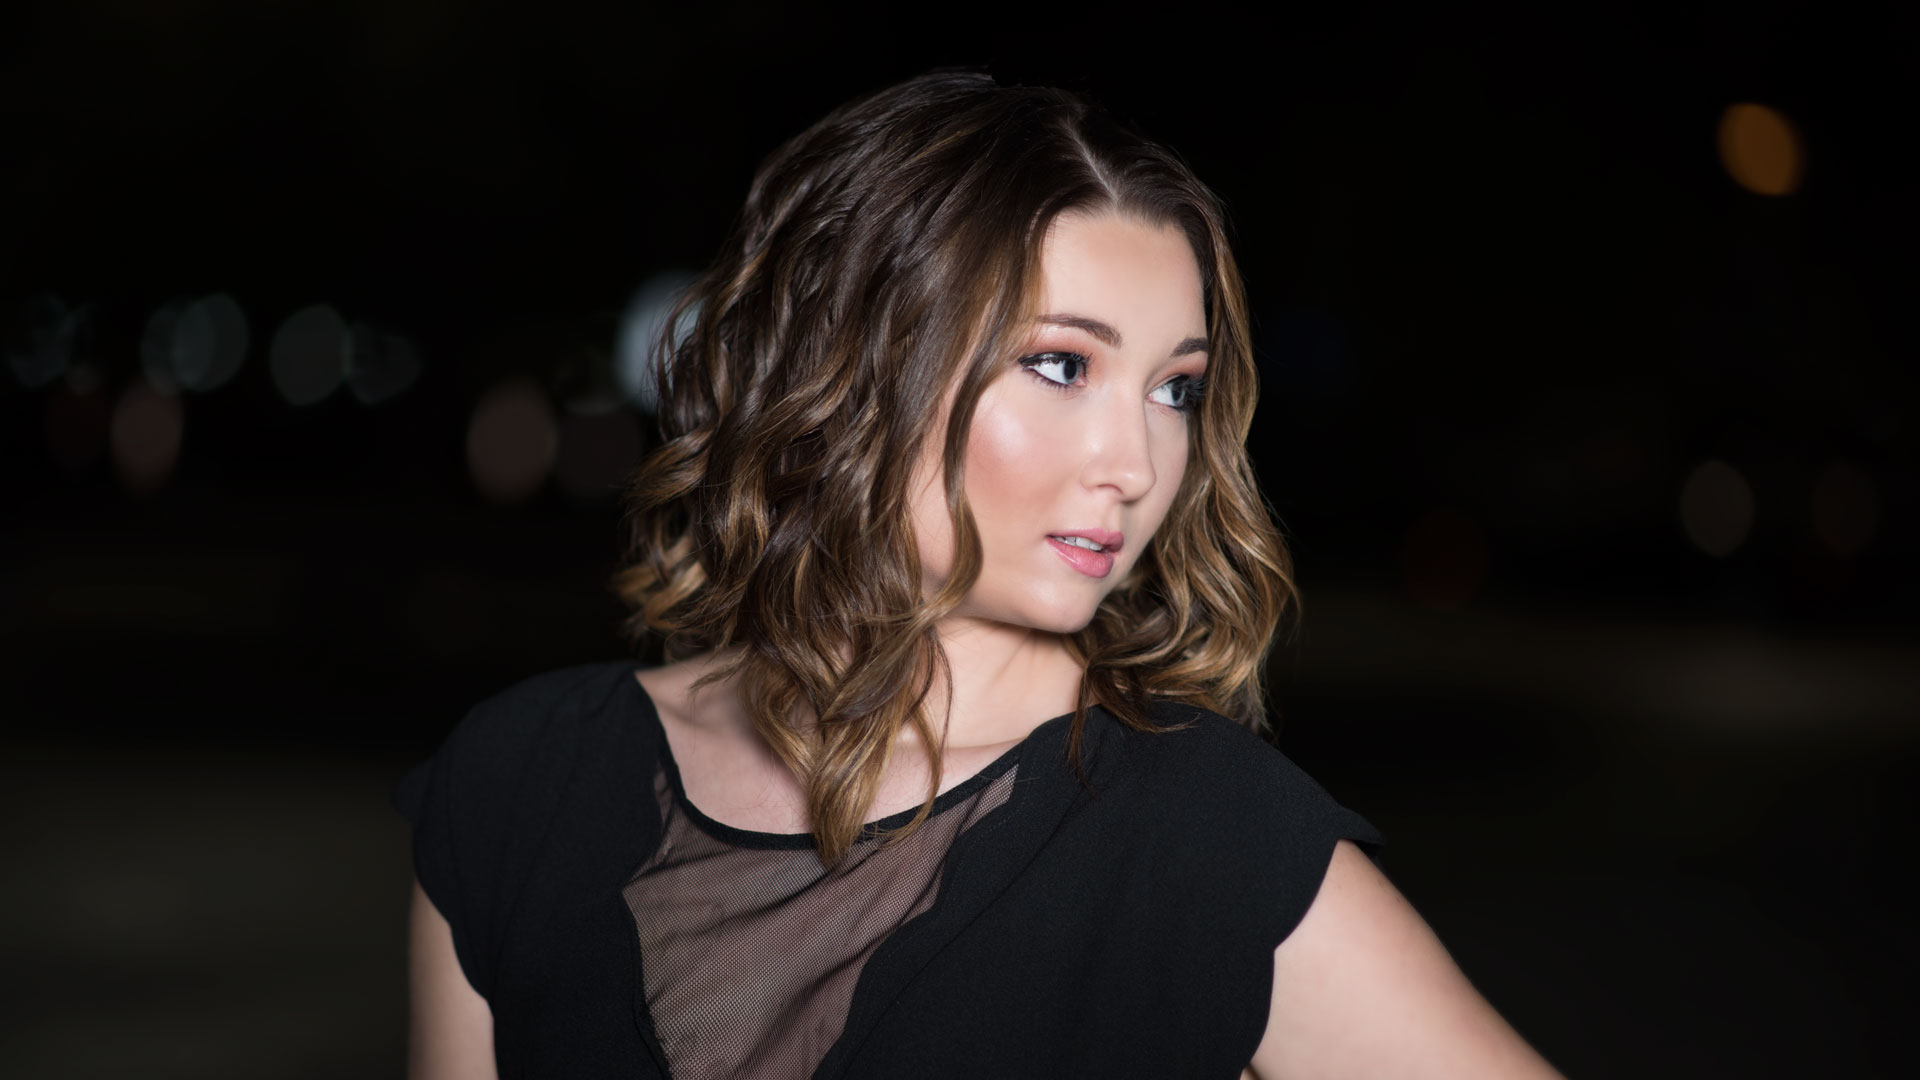 Balayage Dallas Best Hair salon for Balayage highlights Plano Top Hair Colorist Balayage Color Frisco Balayage Ombre Ombreage blonde Sombre Dallas Plano Frisco Allen Mckinney Addison AALAM 4